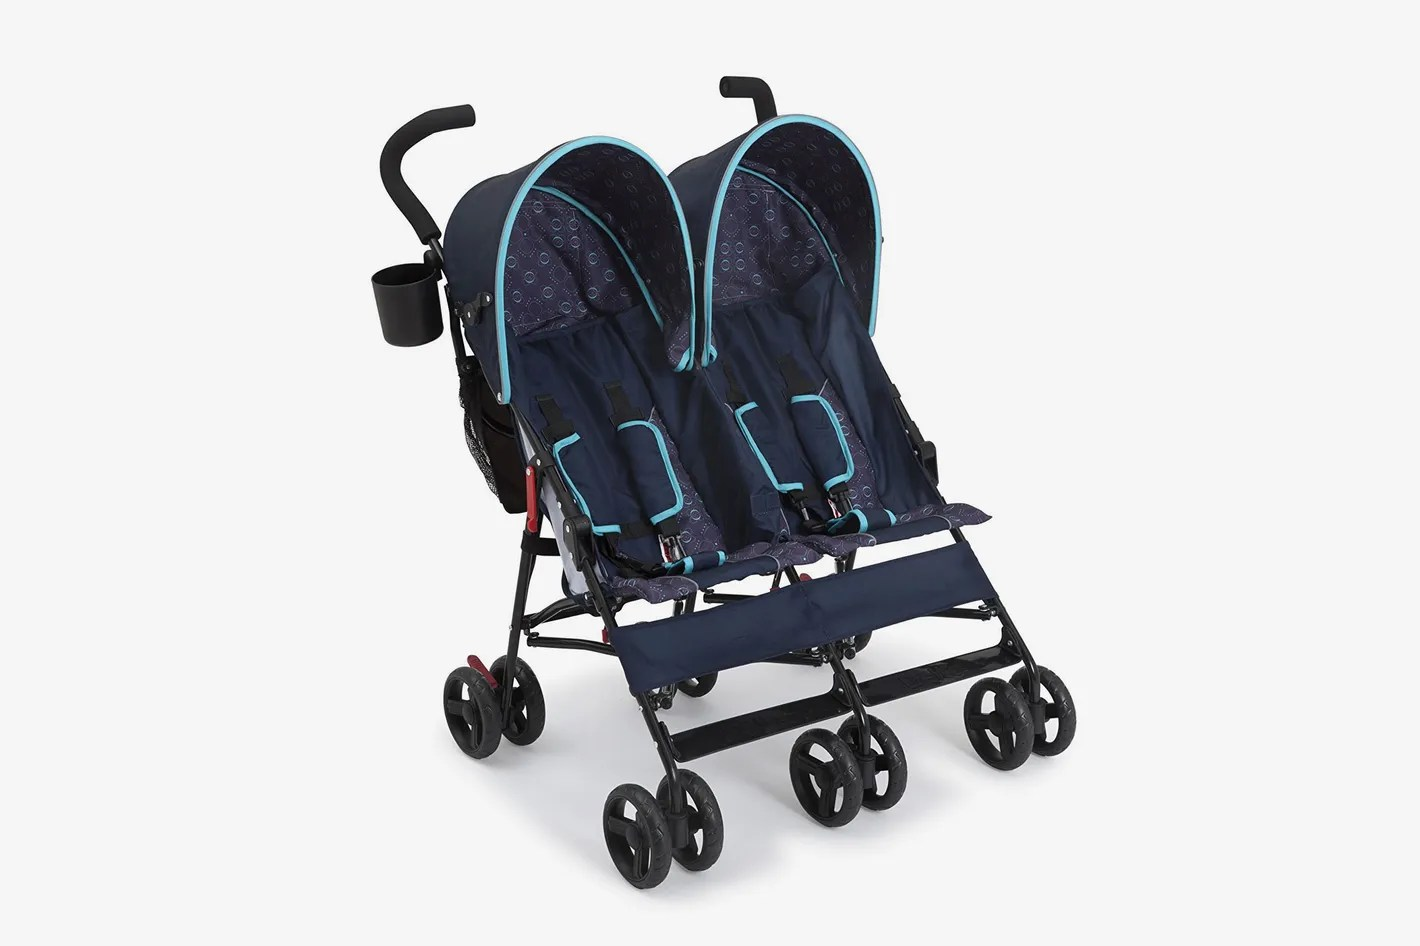 Easywalker Jogging Stroller 8 Best Double Strollers 2019 The Strategist New York